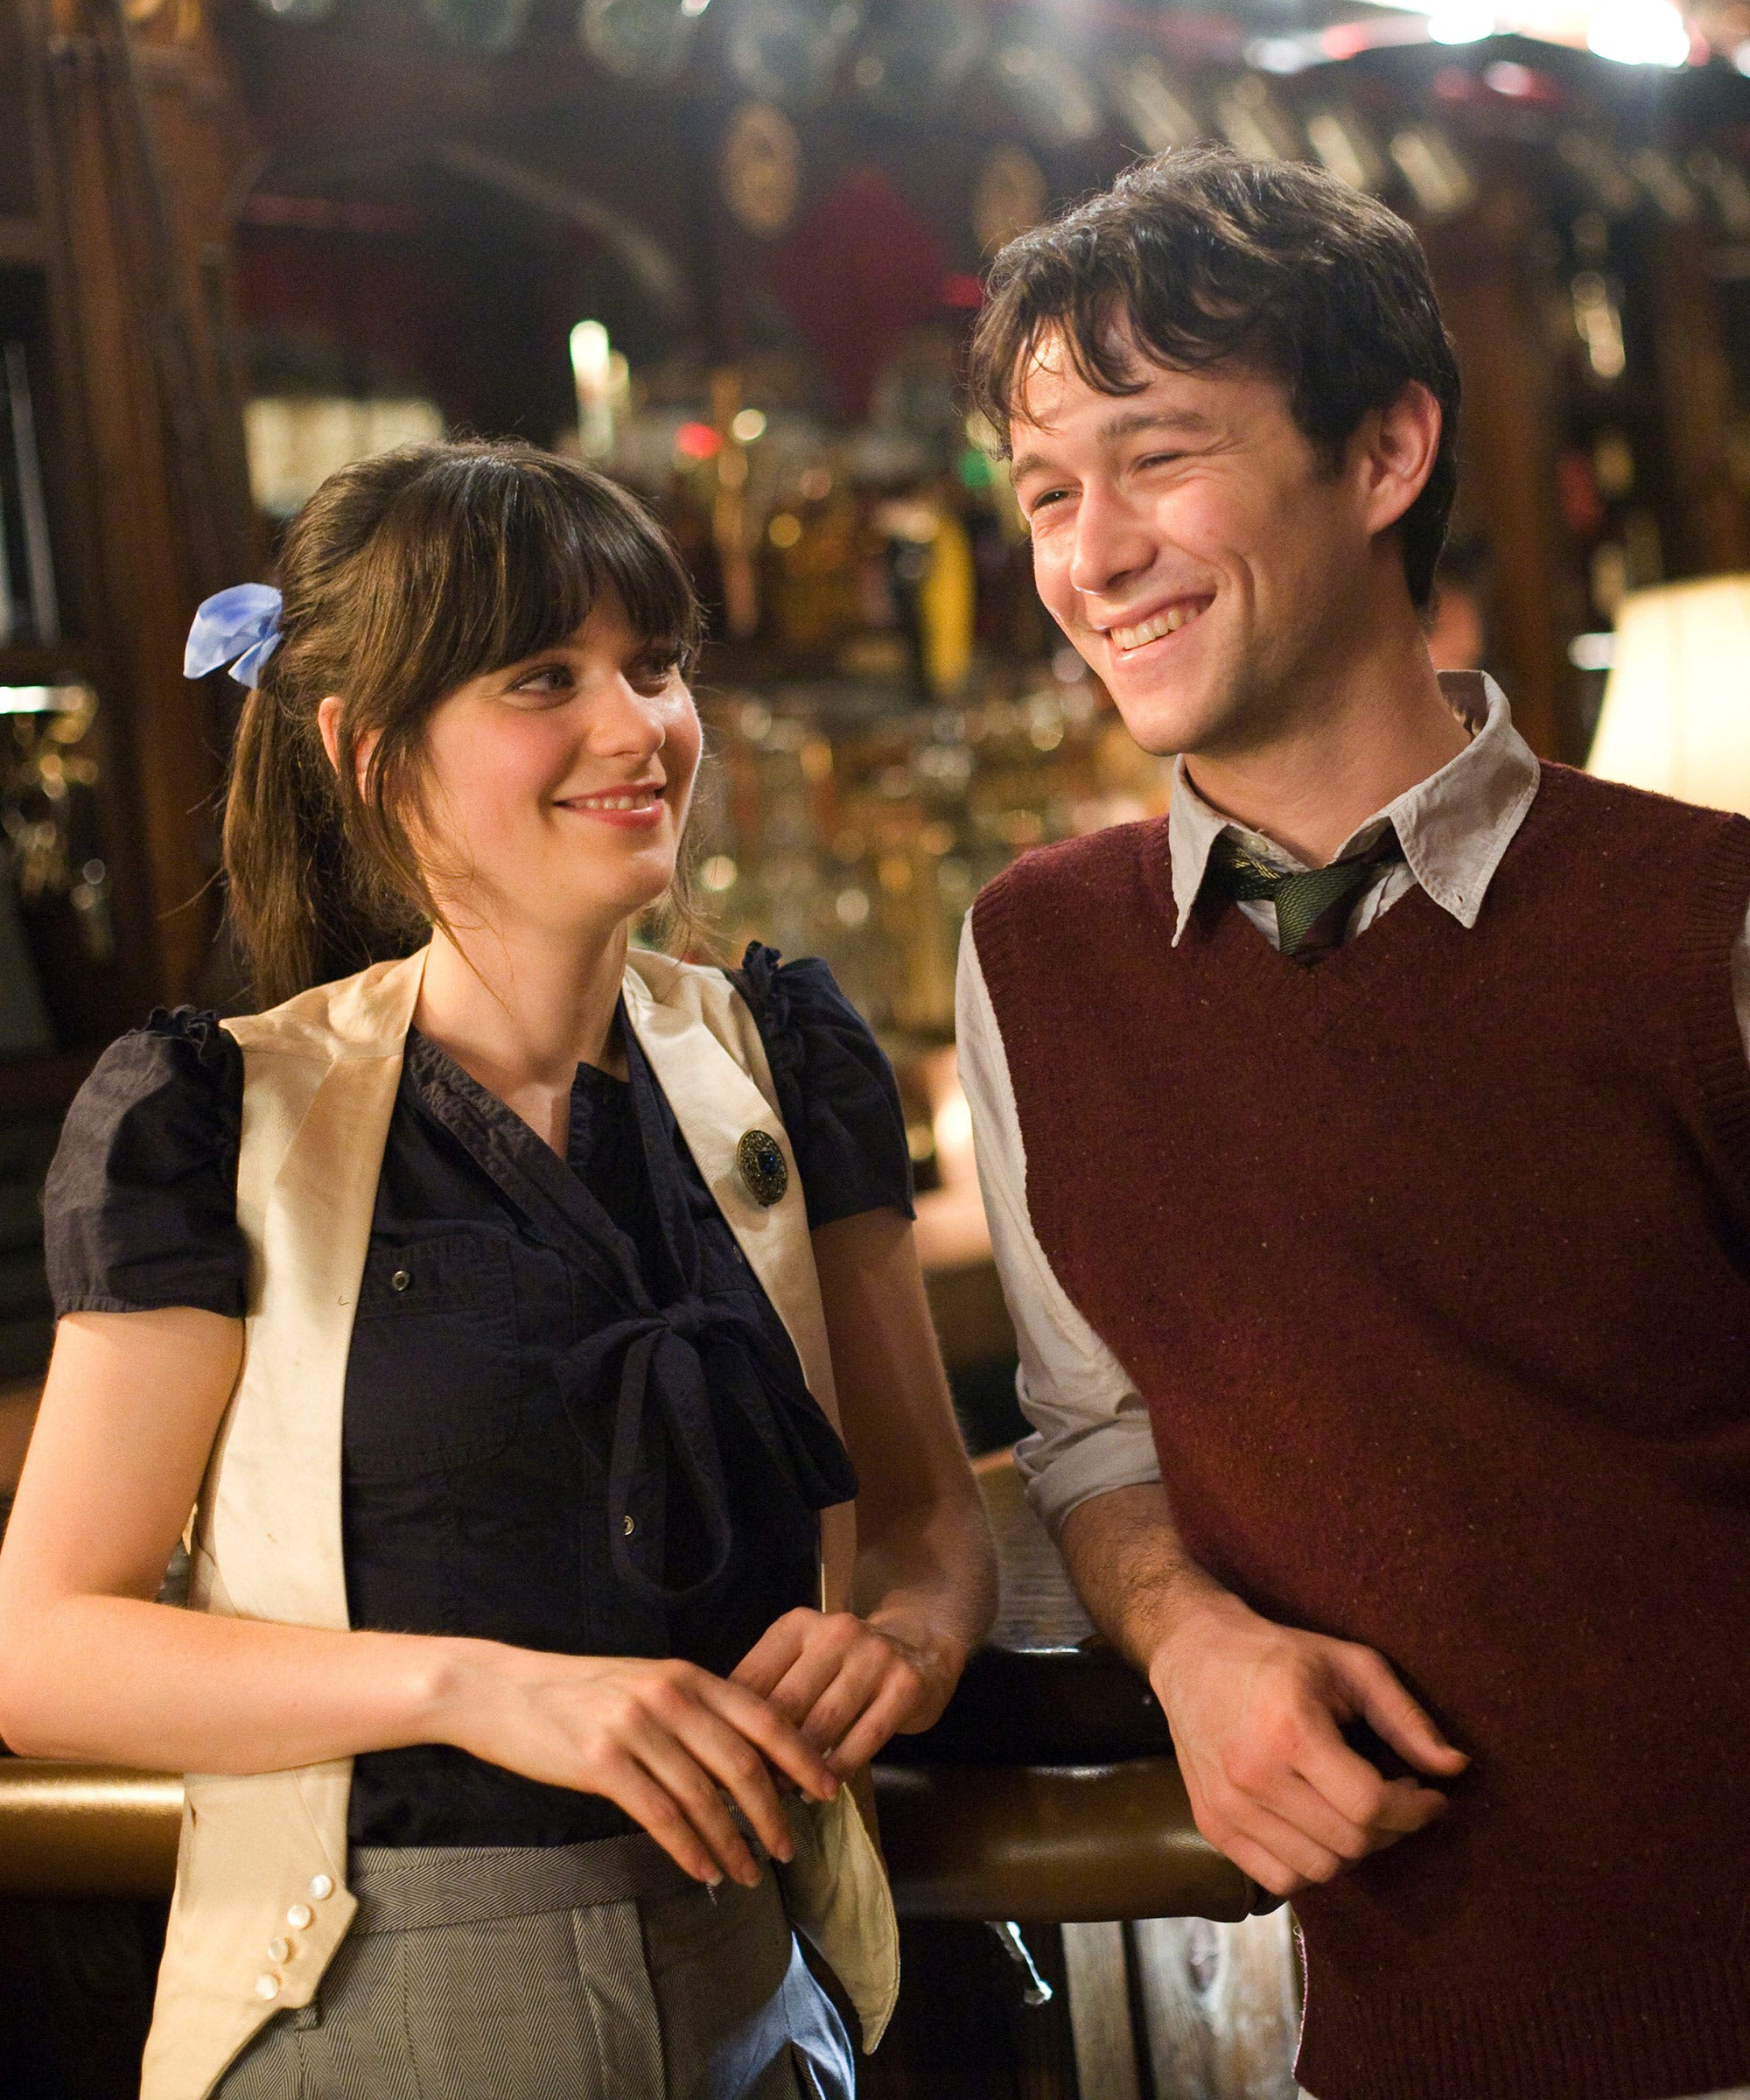 Stripped Of The Hype, (500) Days Of Summer Is Just Another Tired Revenge Movie